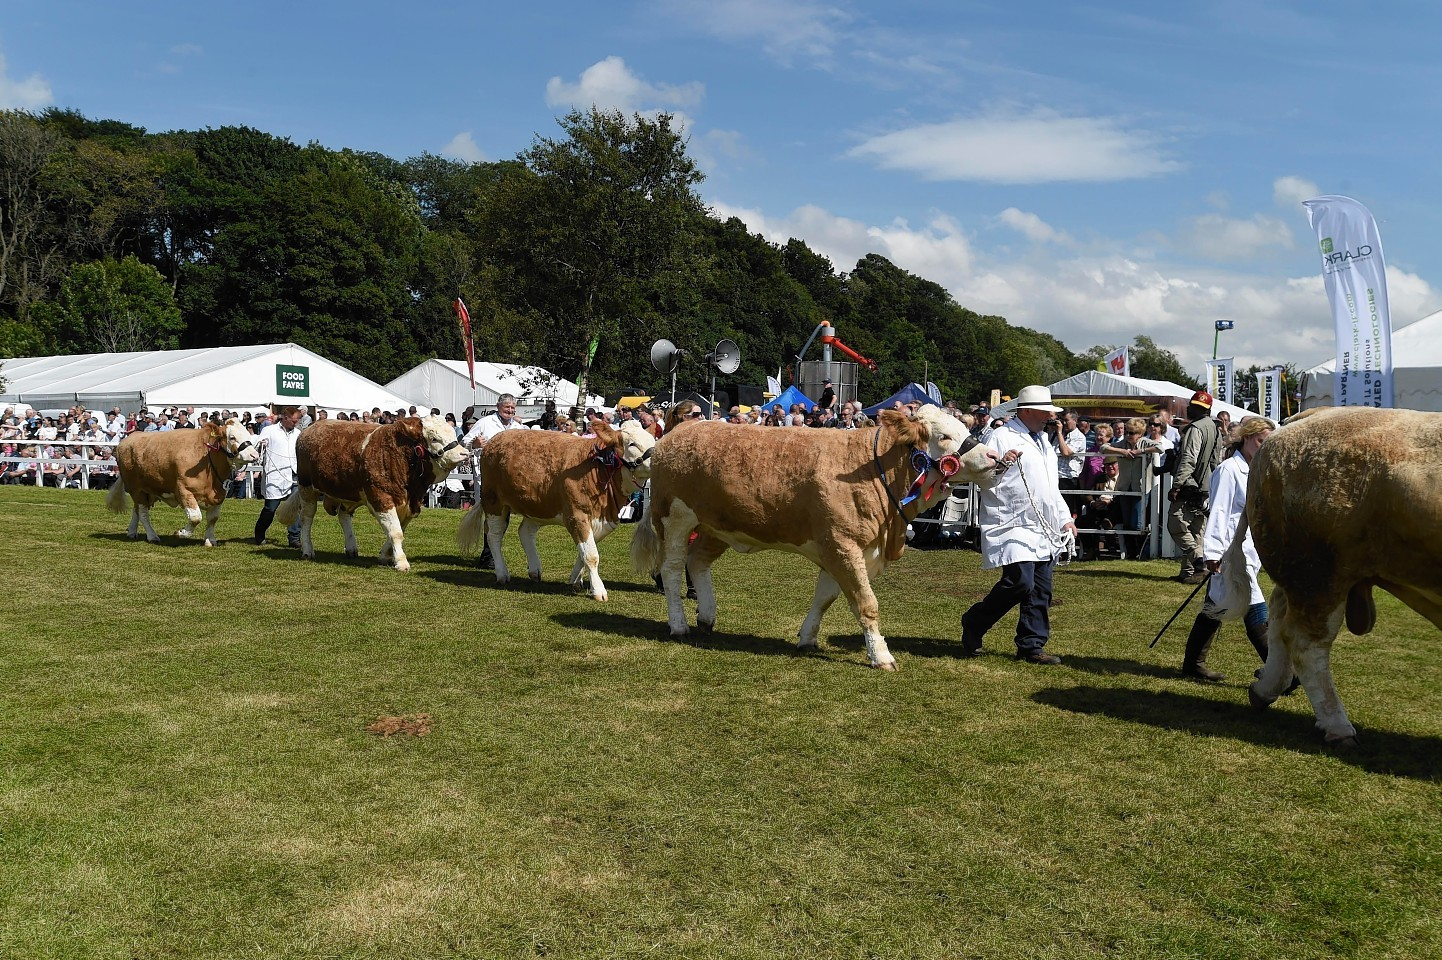 Cattle parade